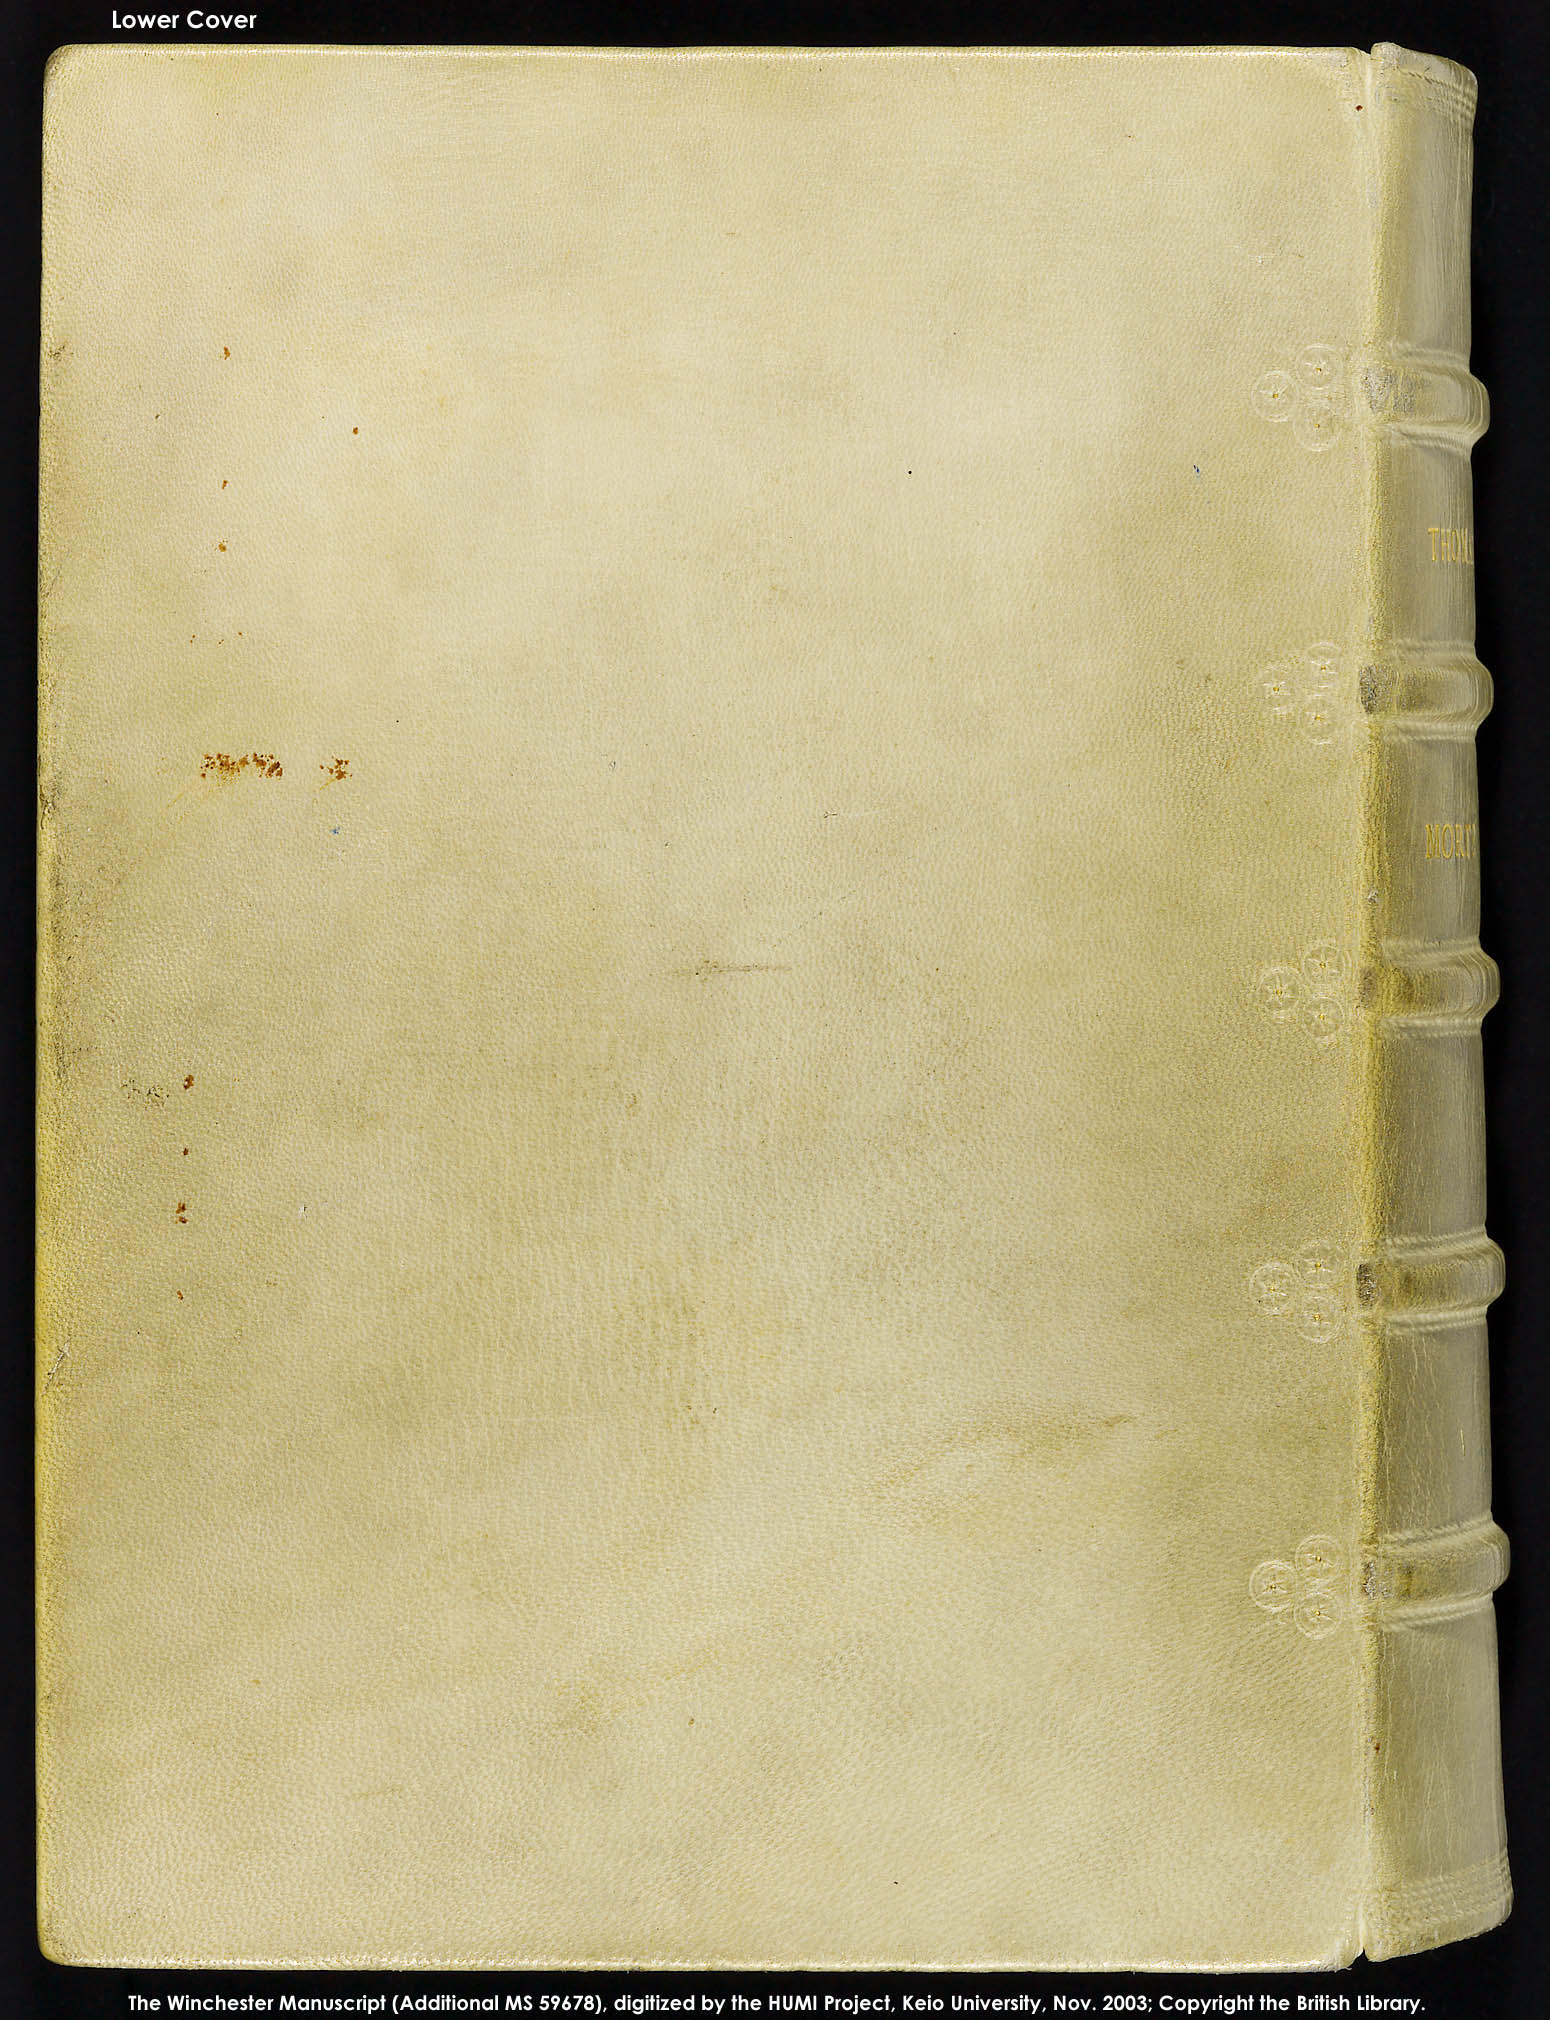 Lower Cover